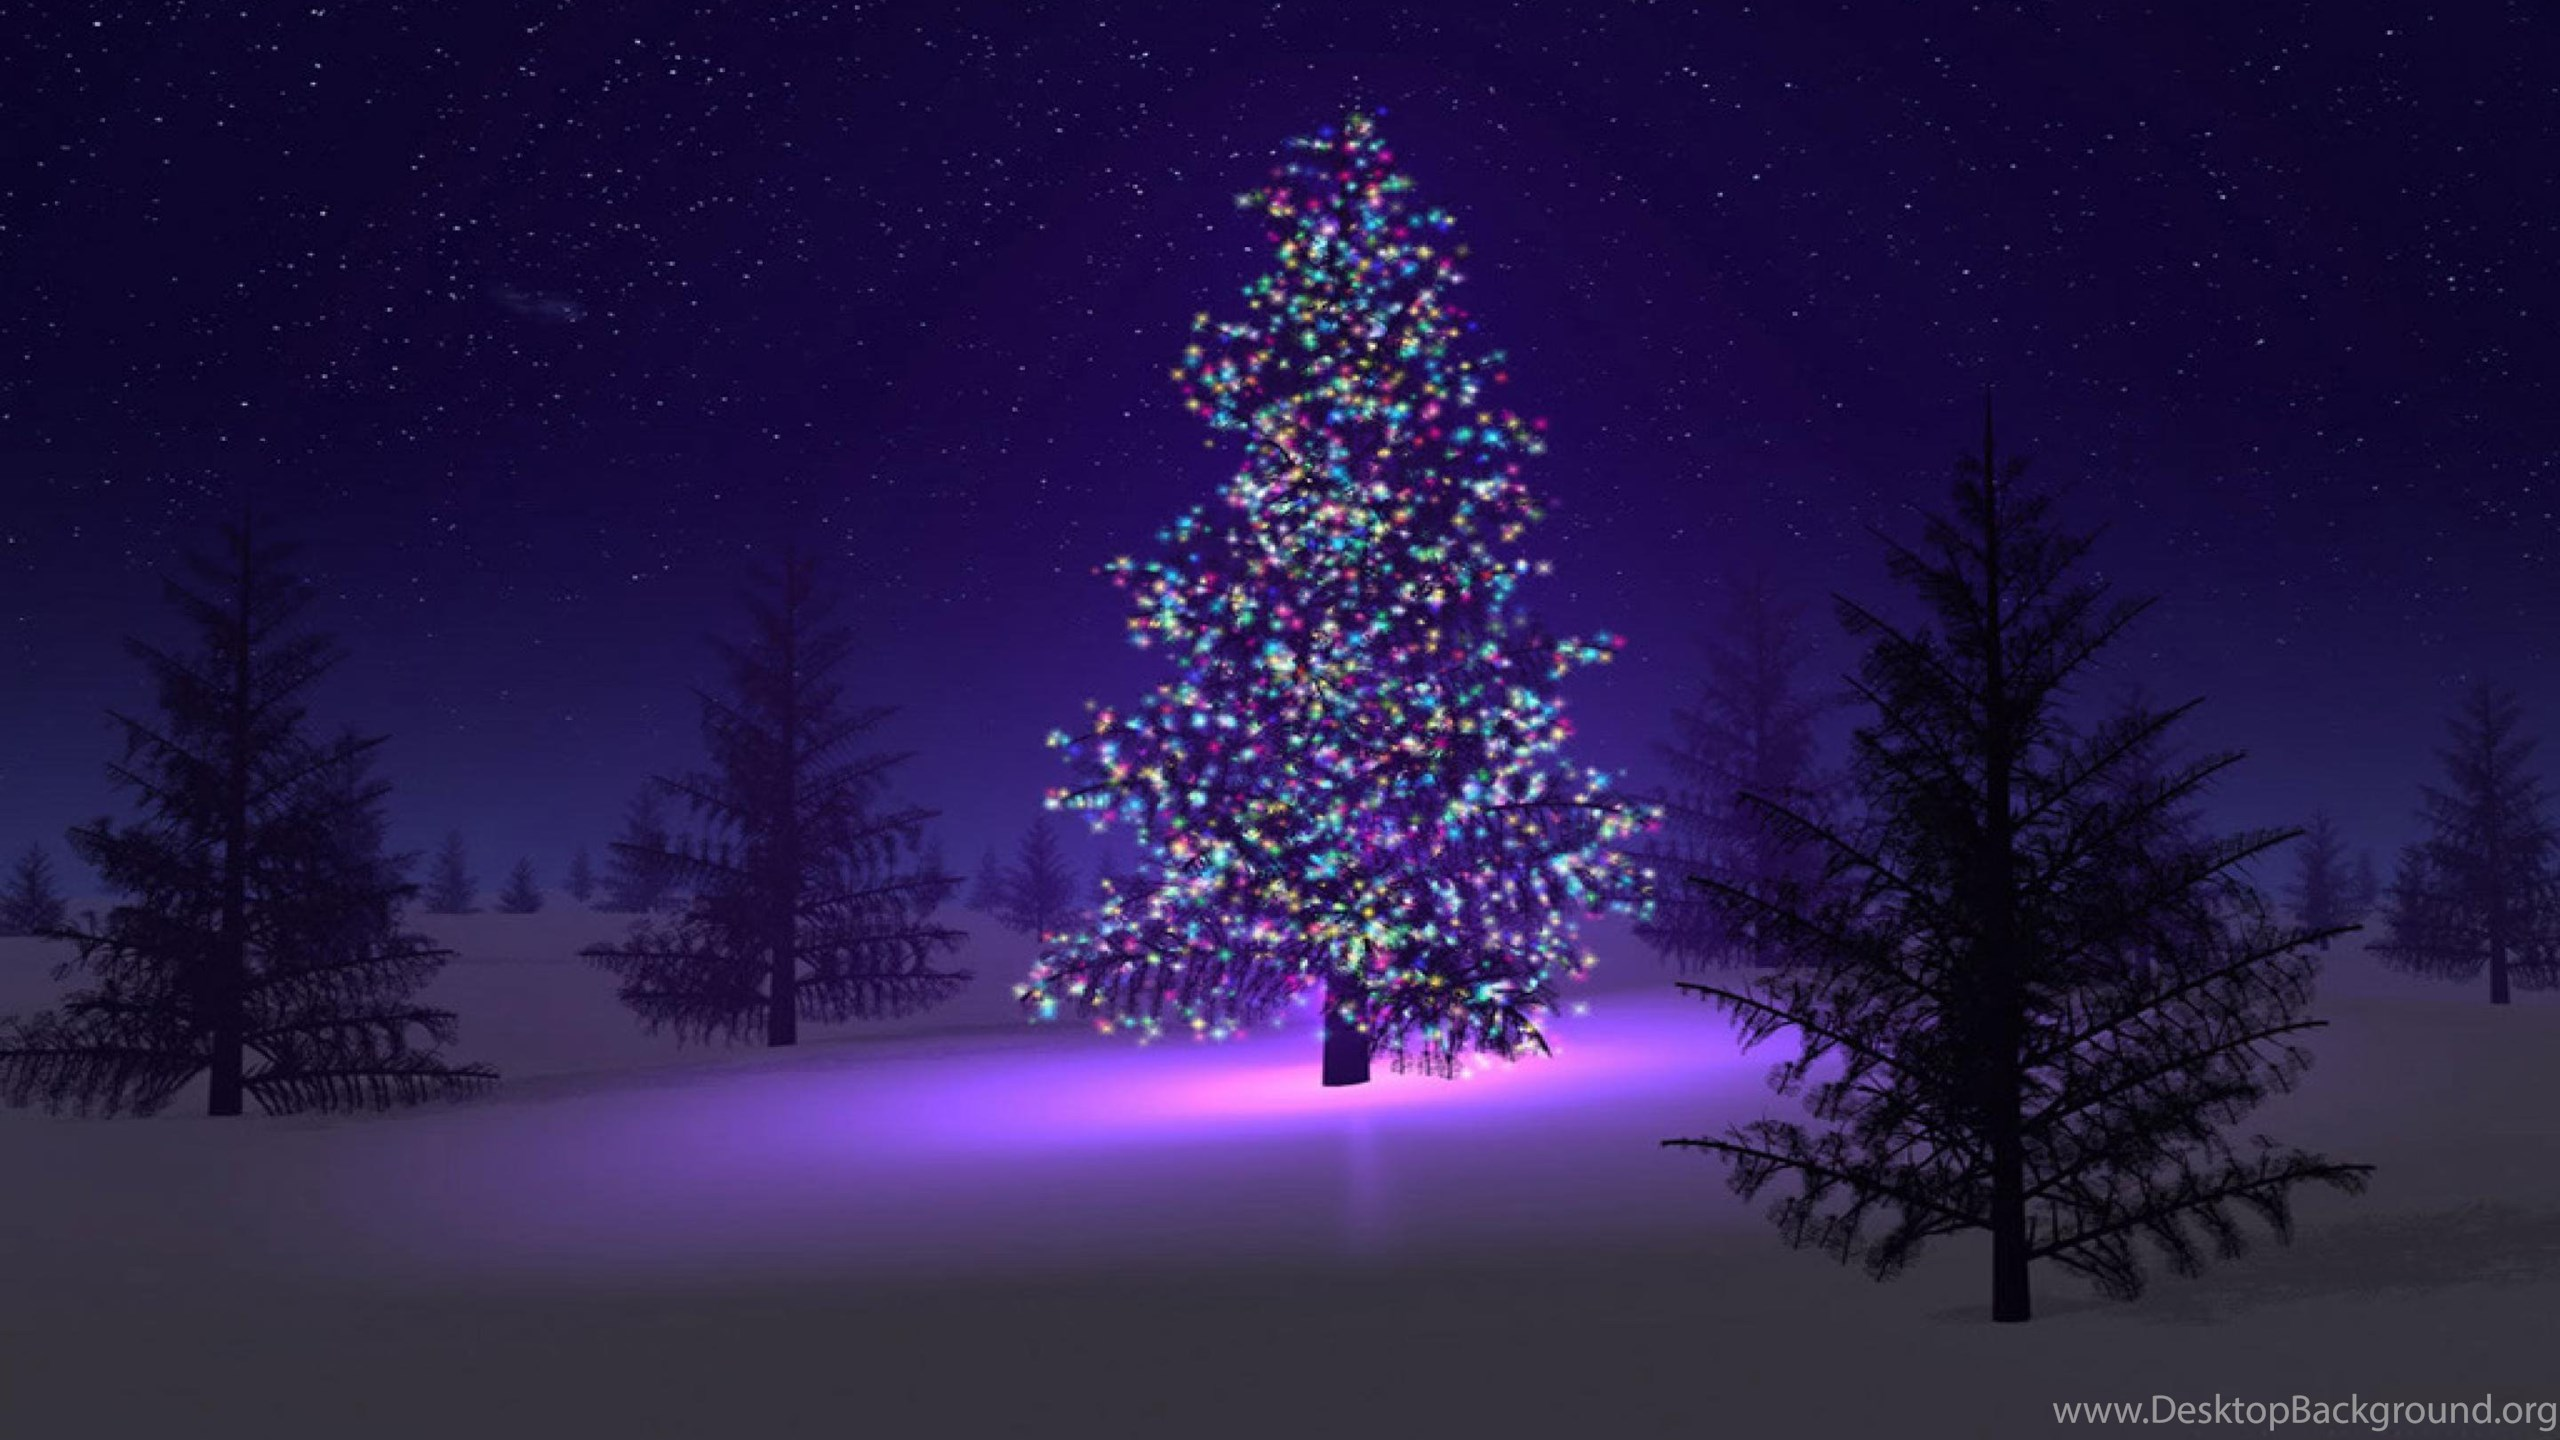 Christmas Tree In The Snow Wallpapers Desktop Background